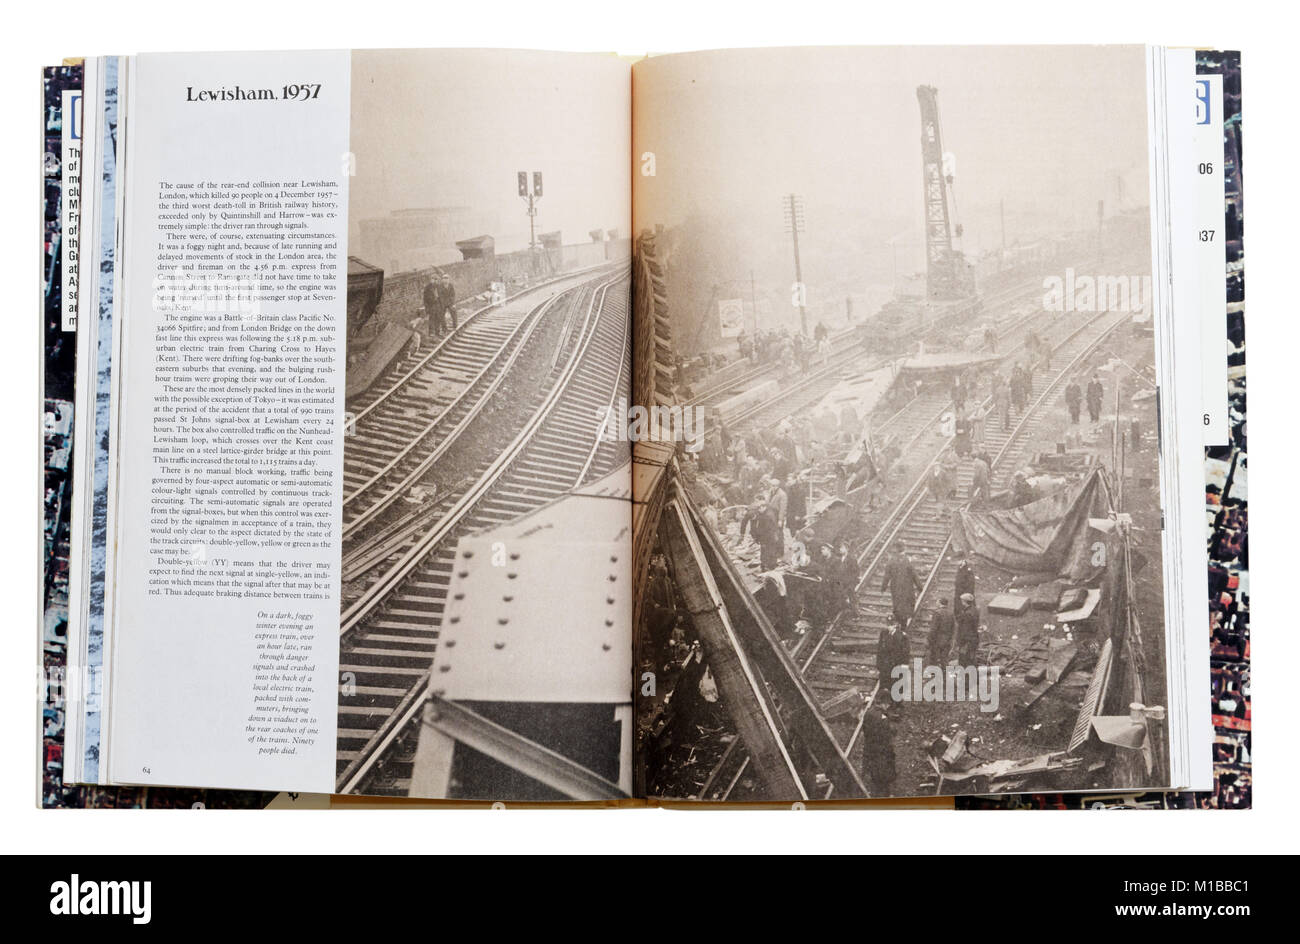 A book of disasters open to the page about the 1957 Lewisham train crash - Stock Image